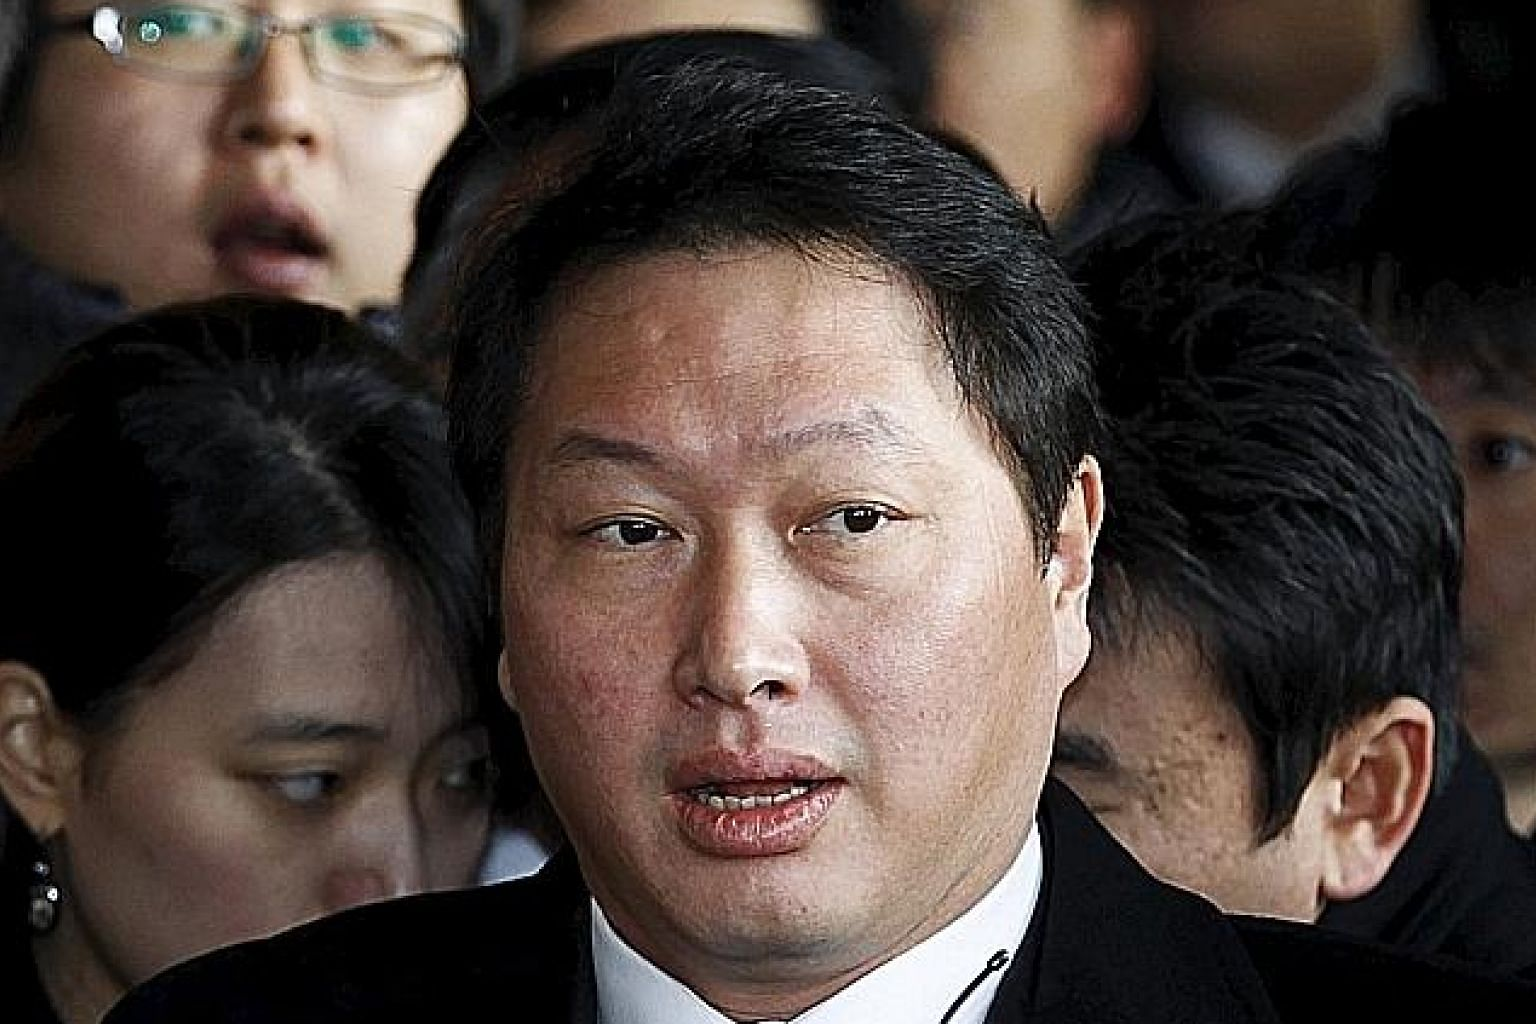 Chey Tae Won, chairman of South Korea's third-largest conglomerate, was in jail for fraud before his pardon.